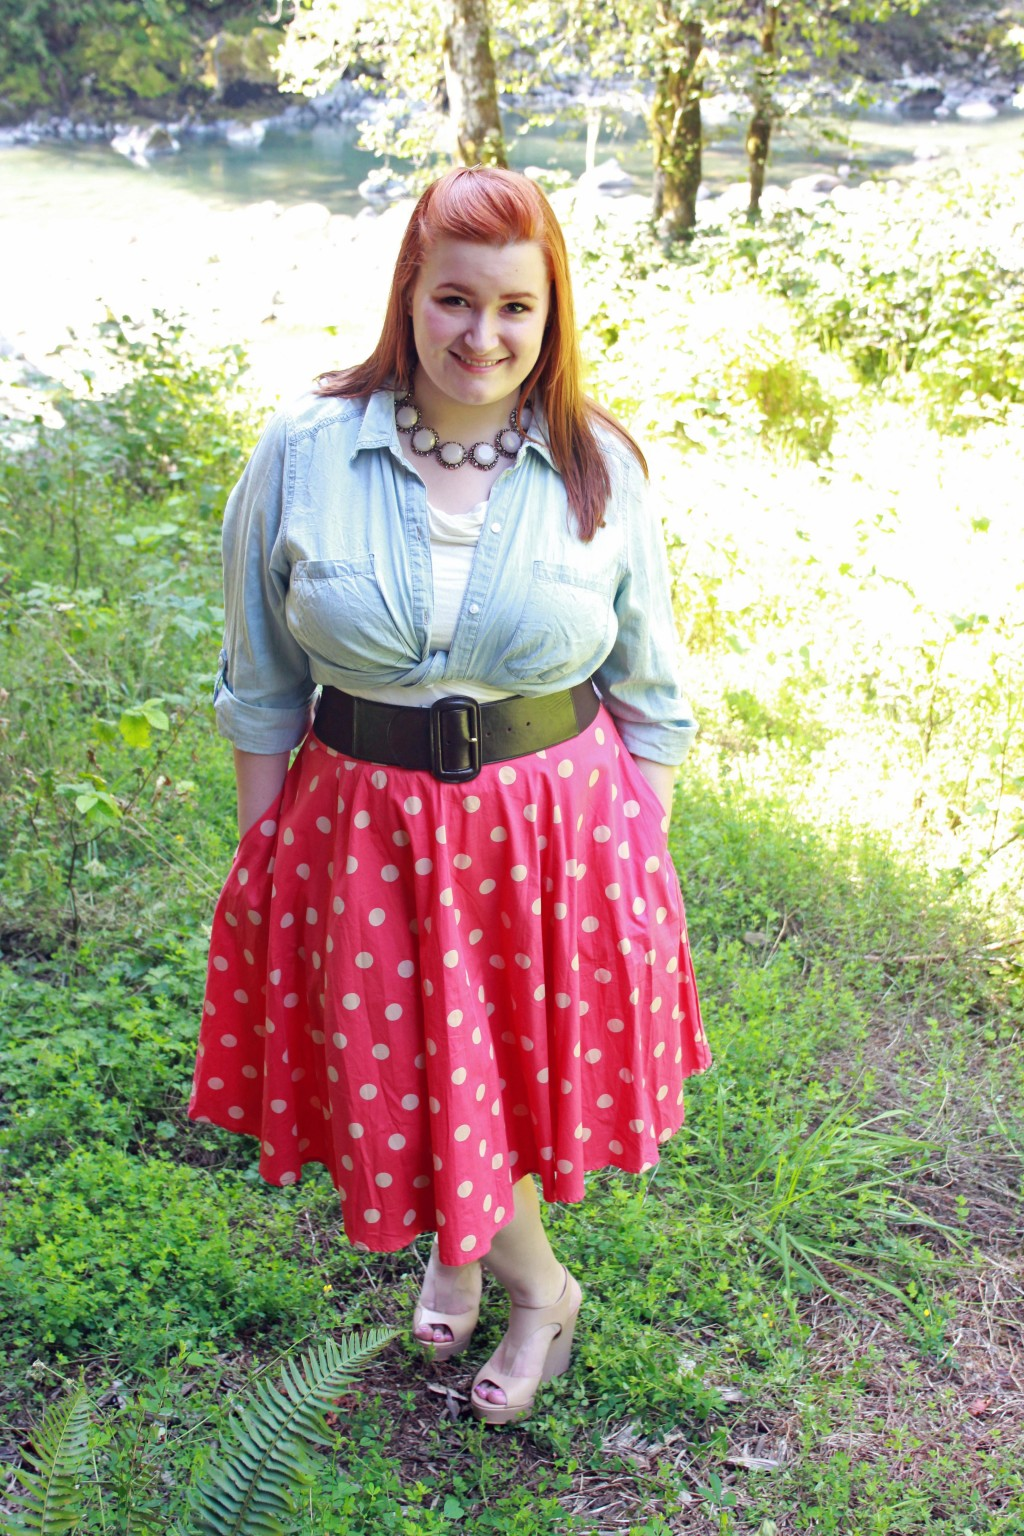 Retro Feminine Style Outfit